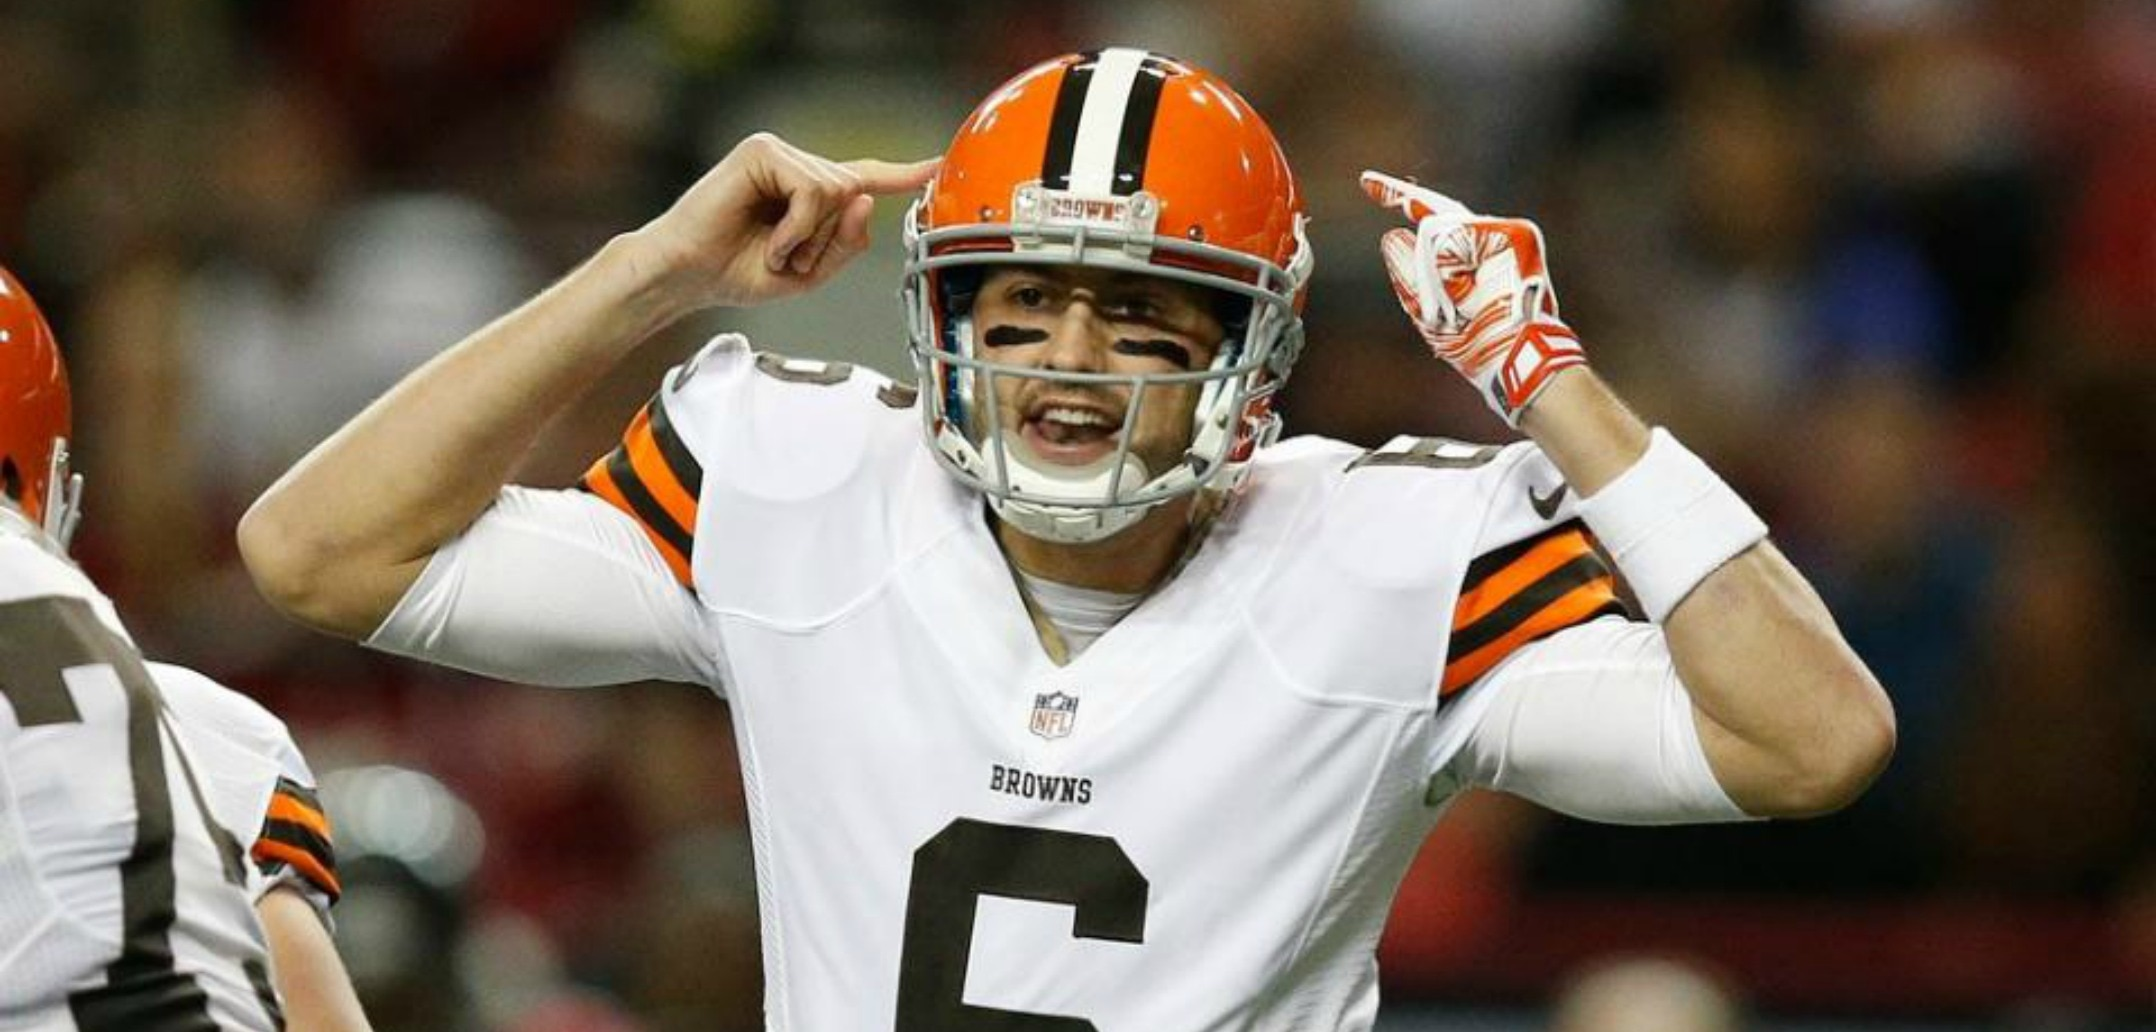 Courtesy of ClevelandBrowns.com: Hoyer may have struggled, but he came through when it counted.